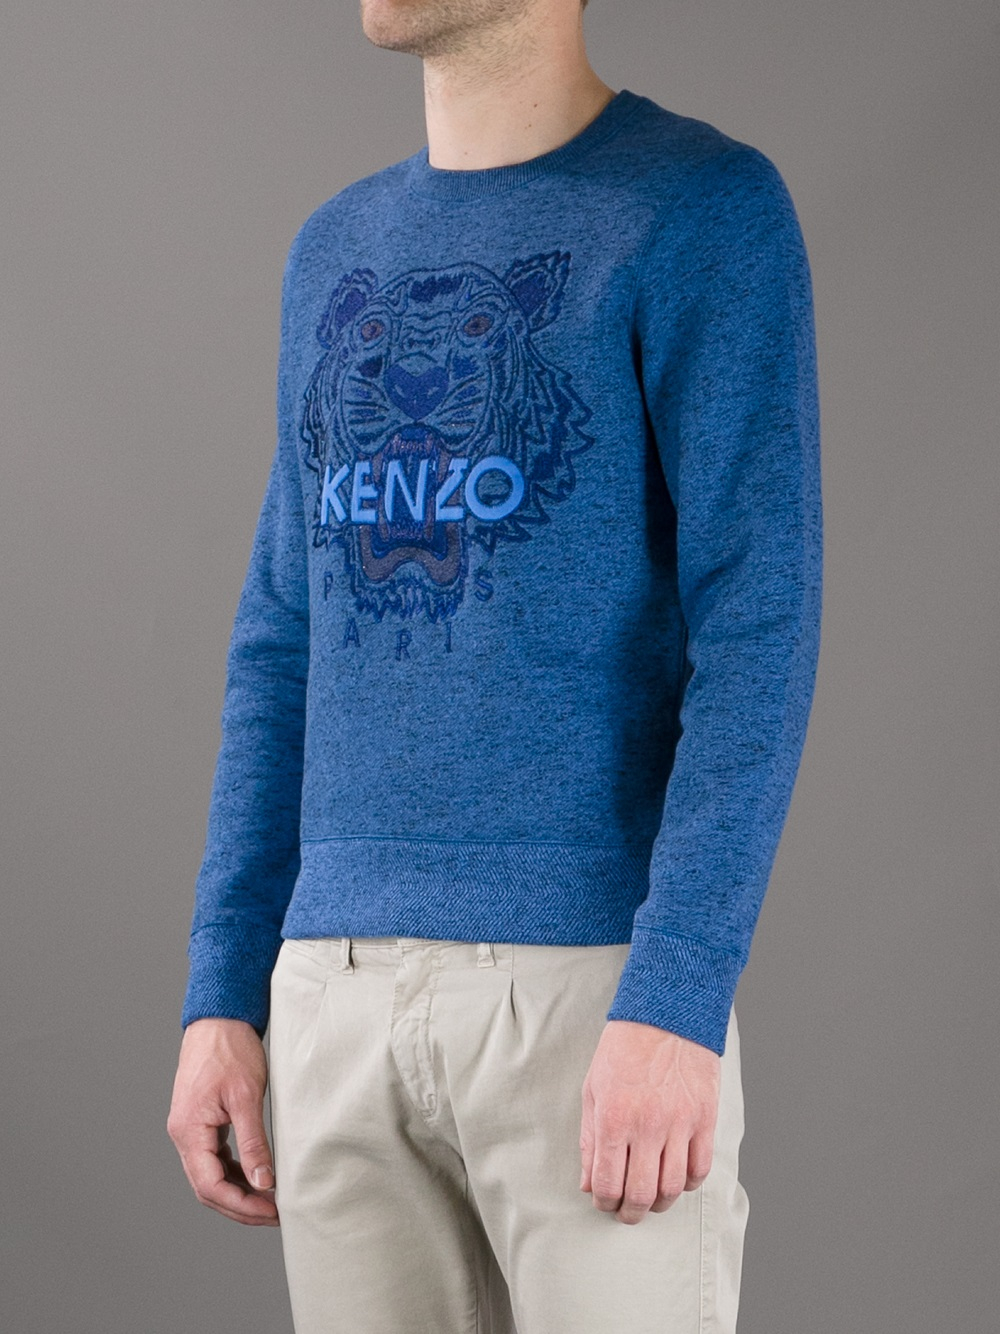 kenzo embroidered tiger sweater in blue for men lyst. Black Bedroom Furniture Sets. Home Design Ideas